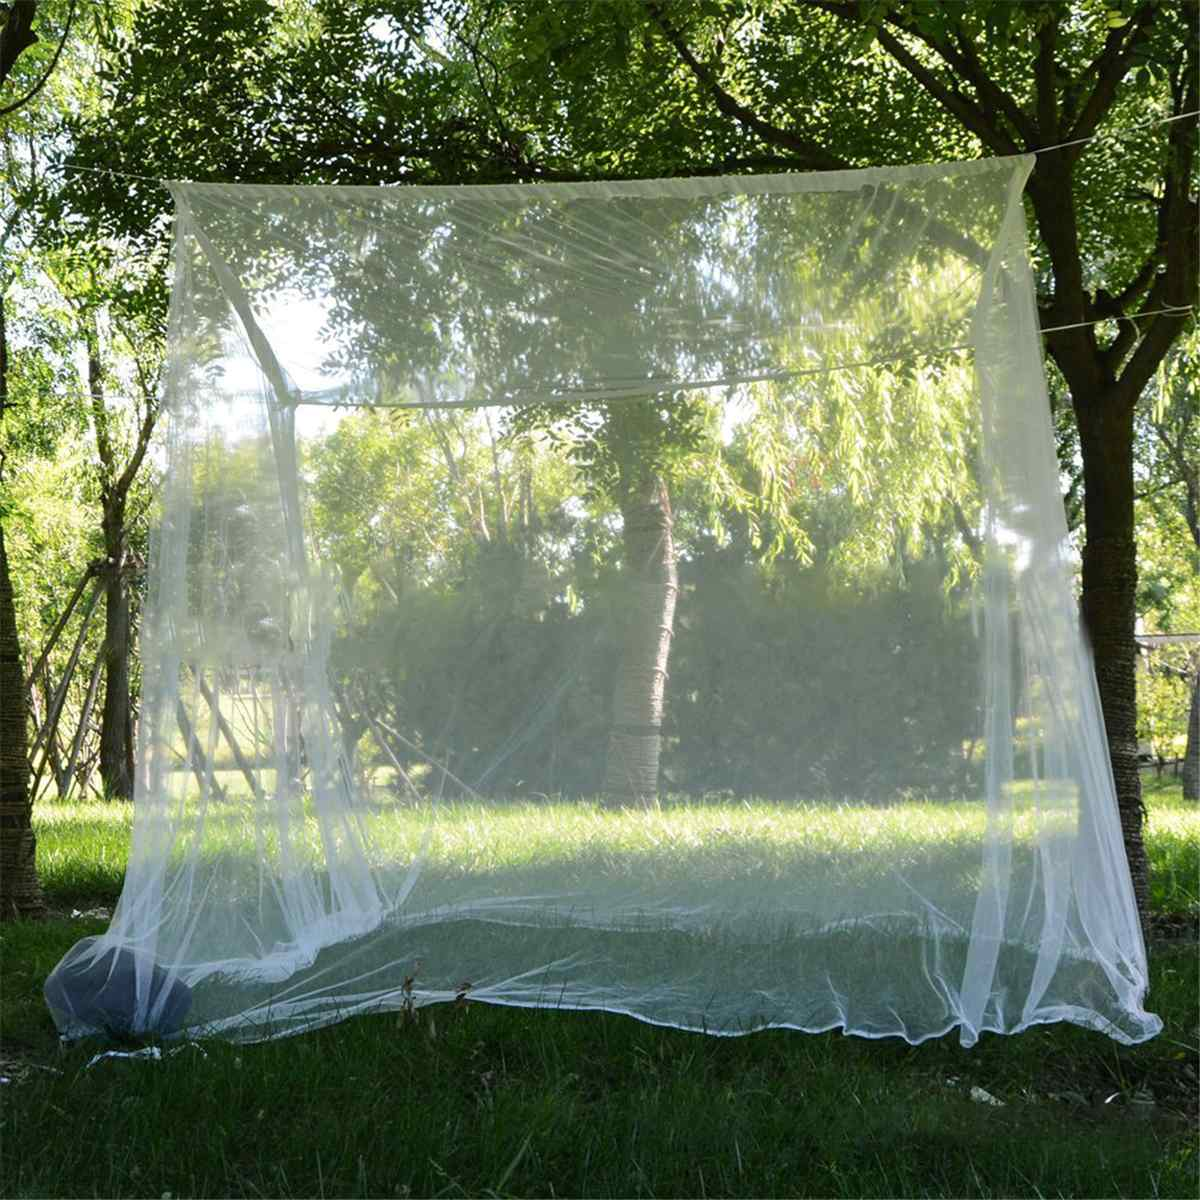 200x200x180cm Travel Camping Mosquito Net Repellent Tent Insect Reject 4 Corner Post Canopy Bed Curtain Bed Tent Hanging Bed 2